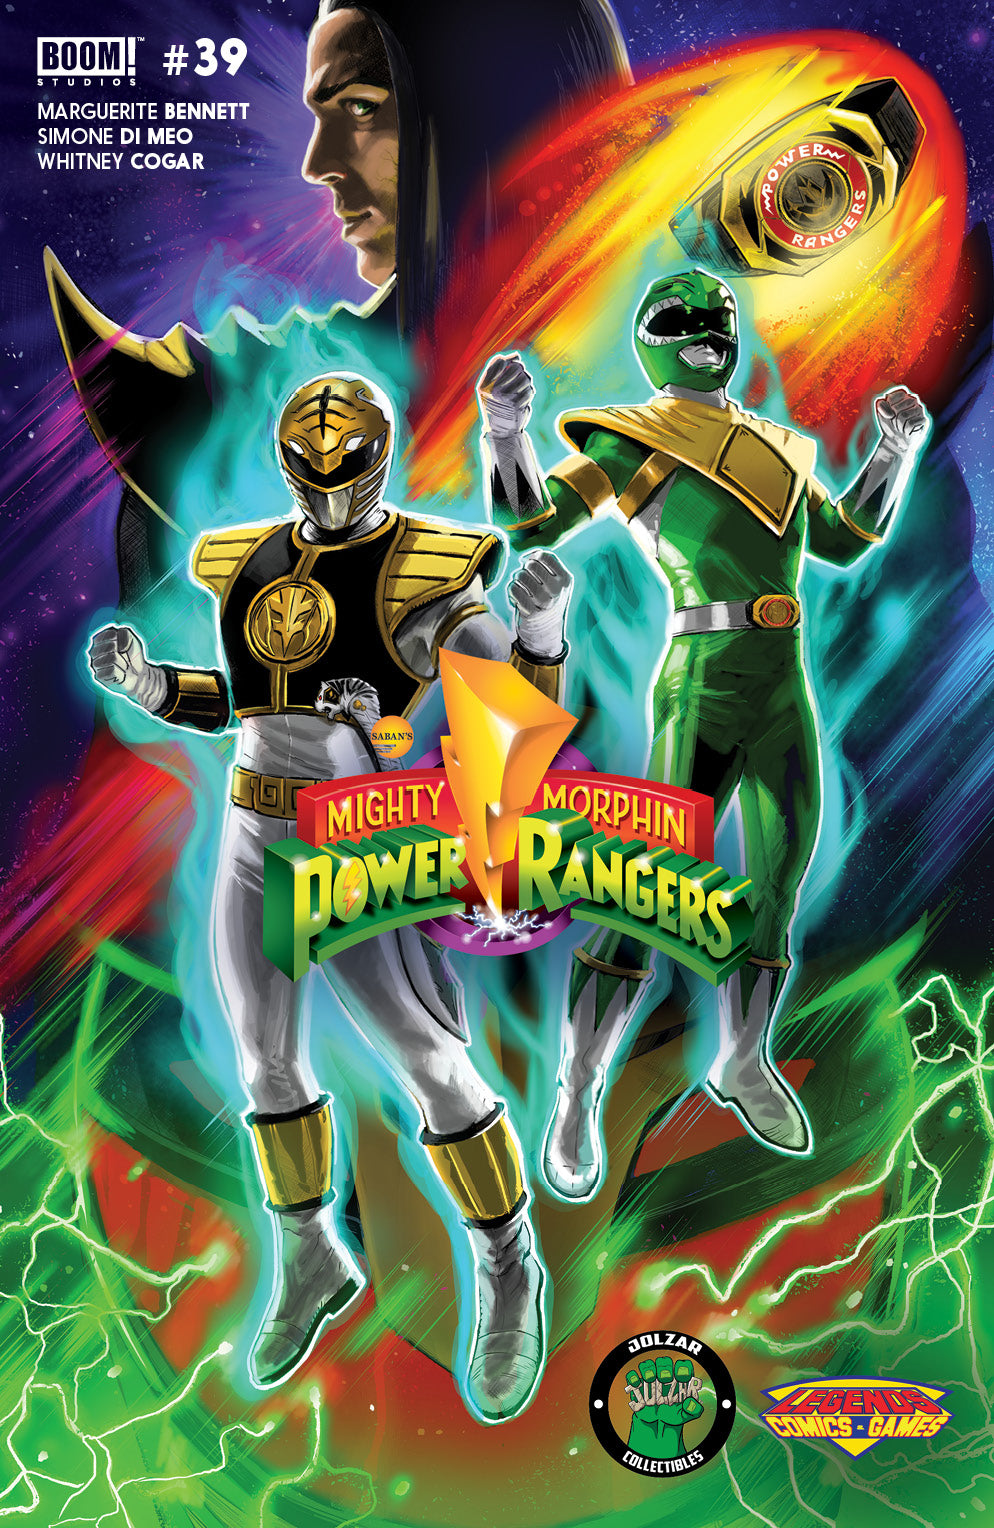 Mighty Morphin Power Rangers #39 Dragonball Broly Homage (Legends Exclusive Variant)